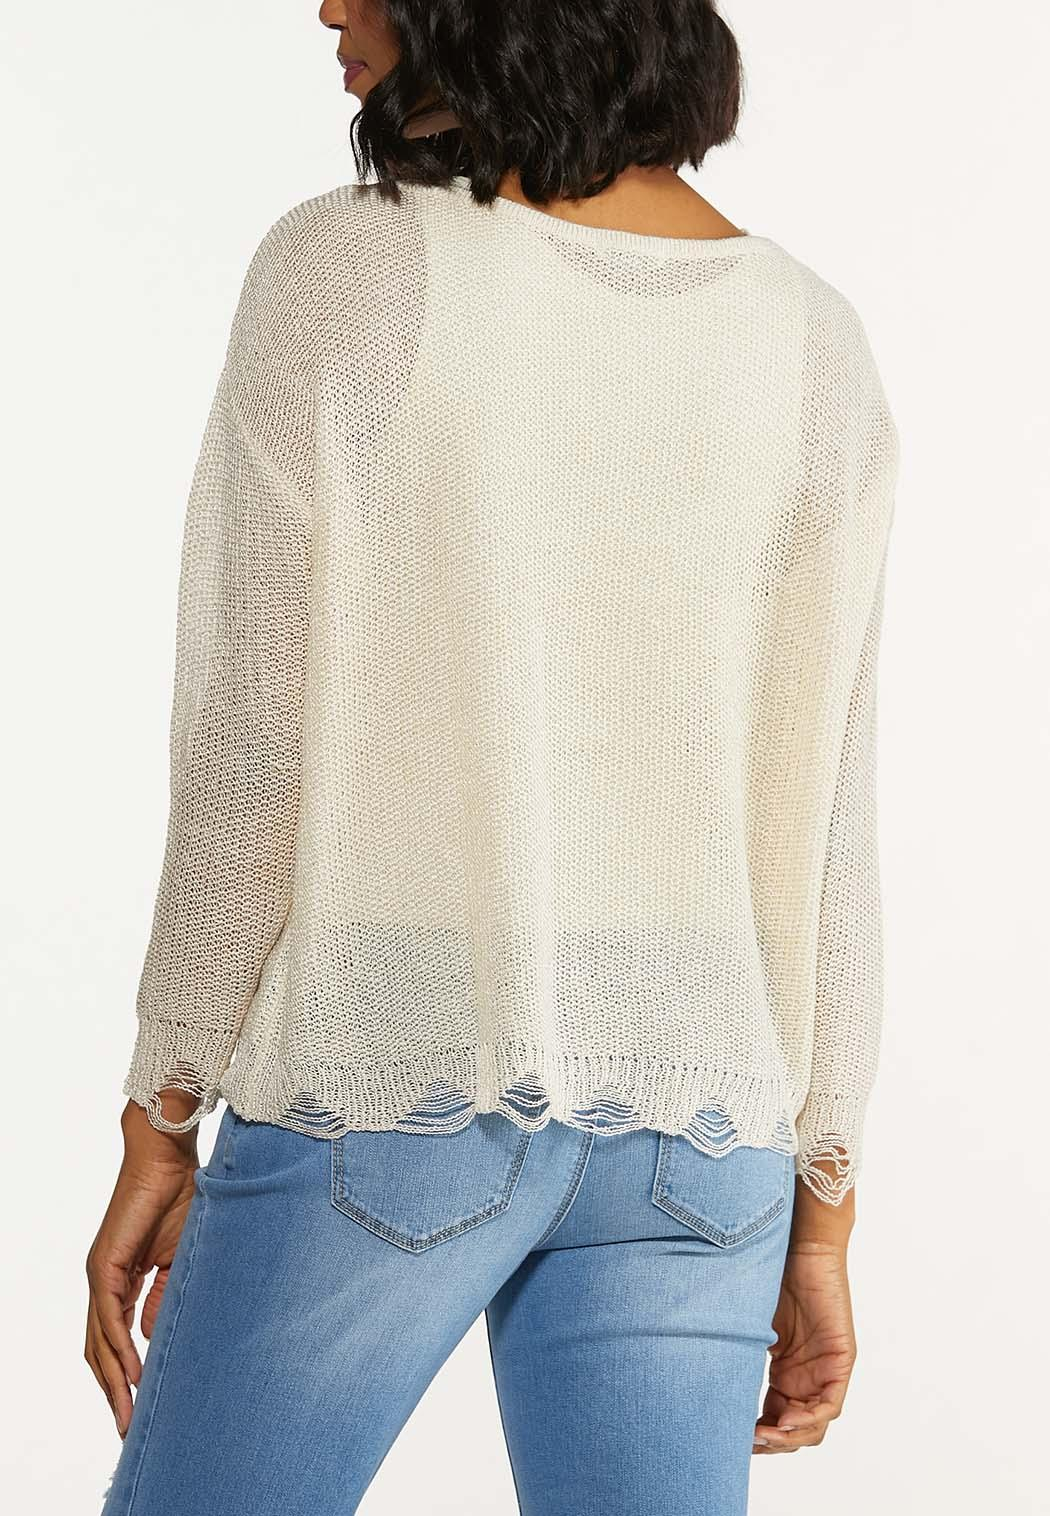 Distressed Scalloped Sweater (Item #44619069)